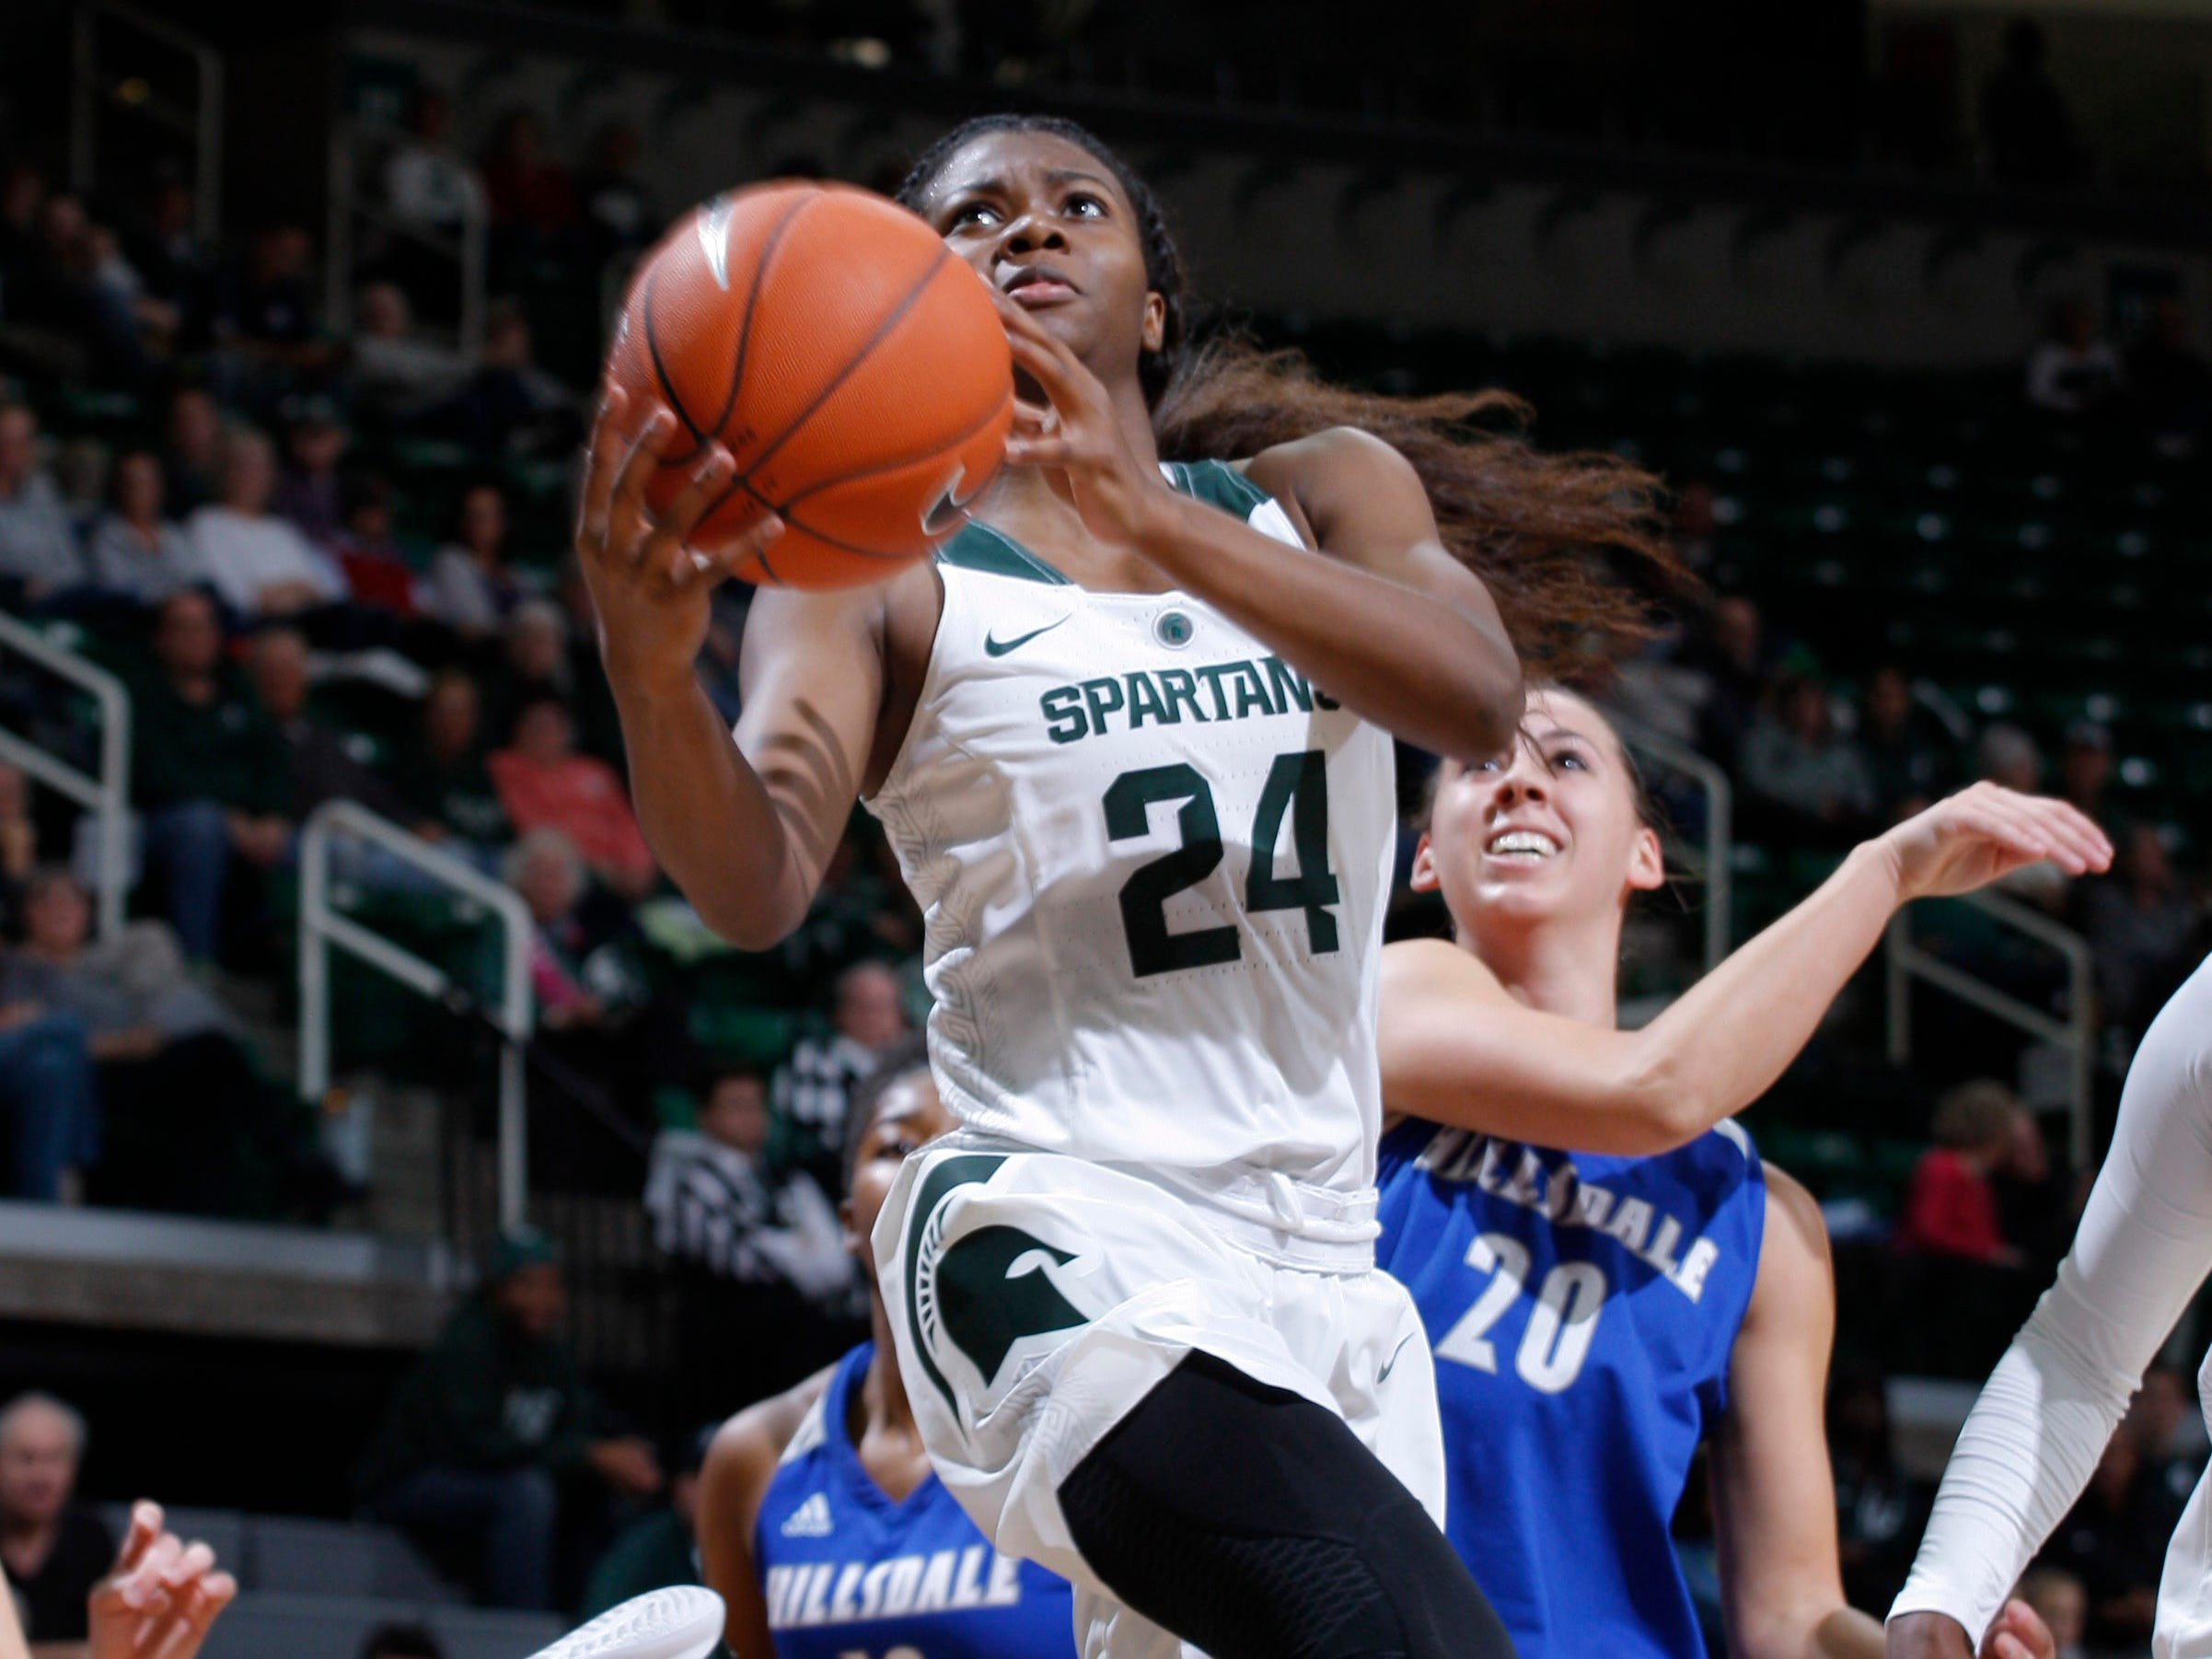 Michigan State's Nia Clouden (24) gets a driving layup in front of Hillsdale's Makenna Ott, Thursday, Nov. 1, 2018, in East Lansing, Mich.